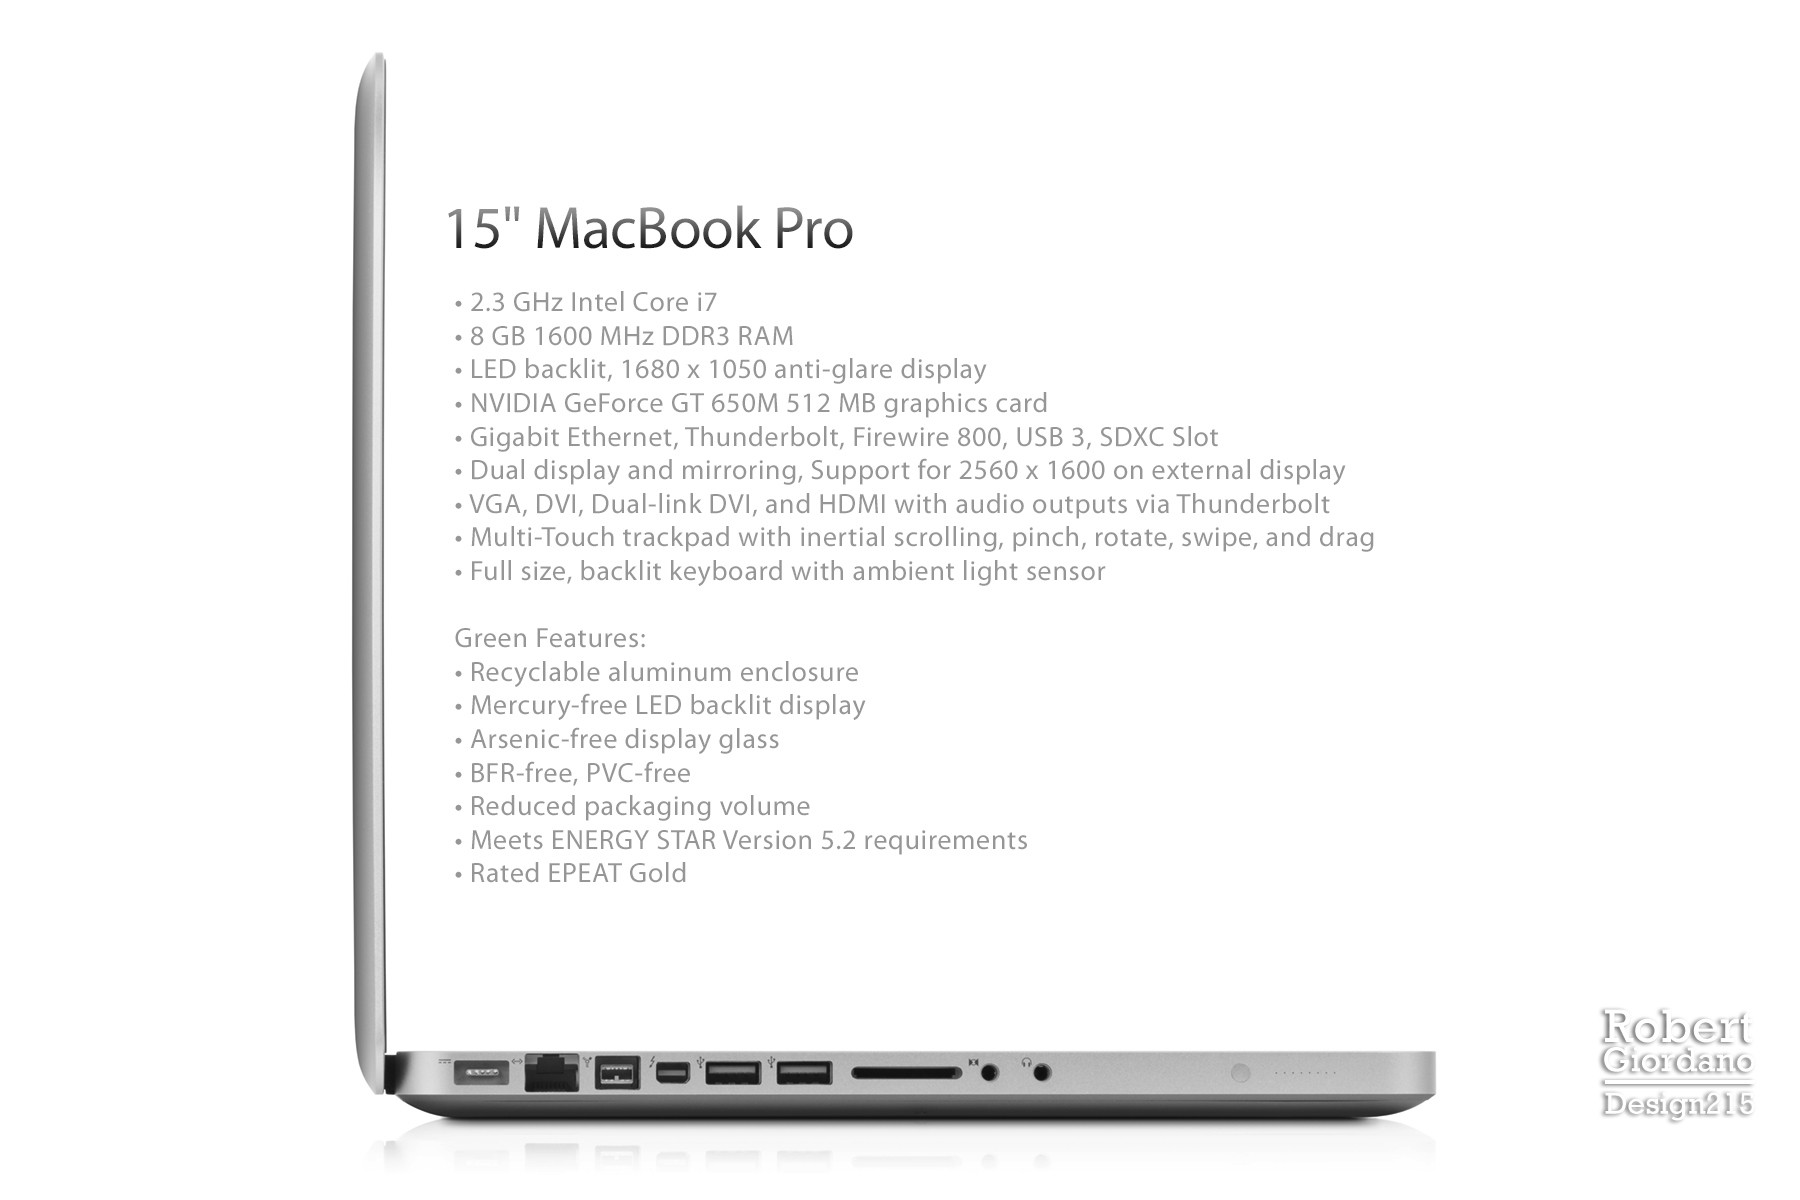 2013 Macbook Pro, Side View - Product Photography